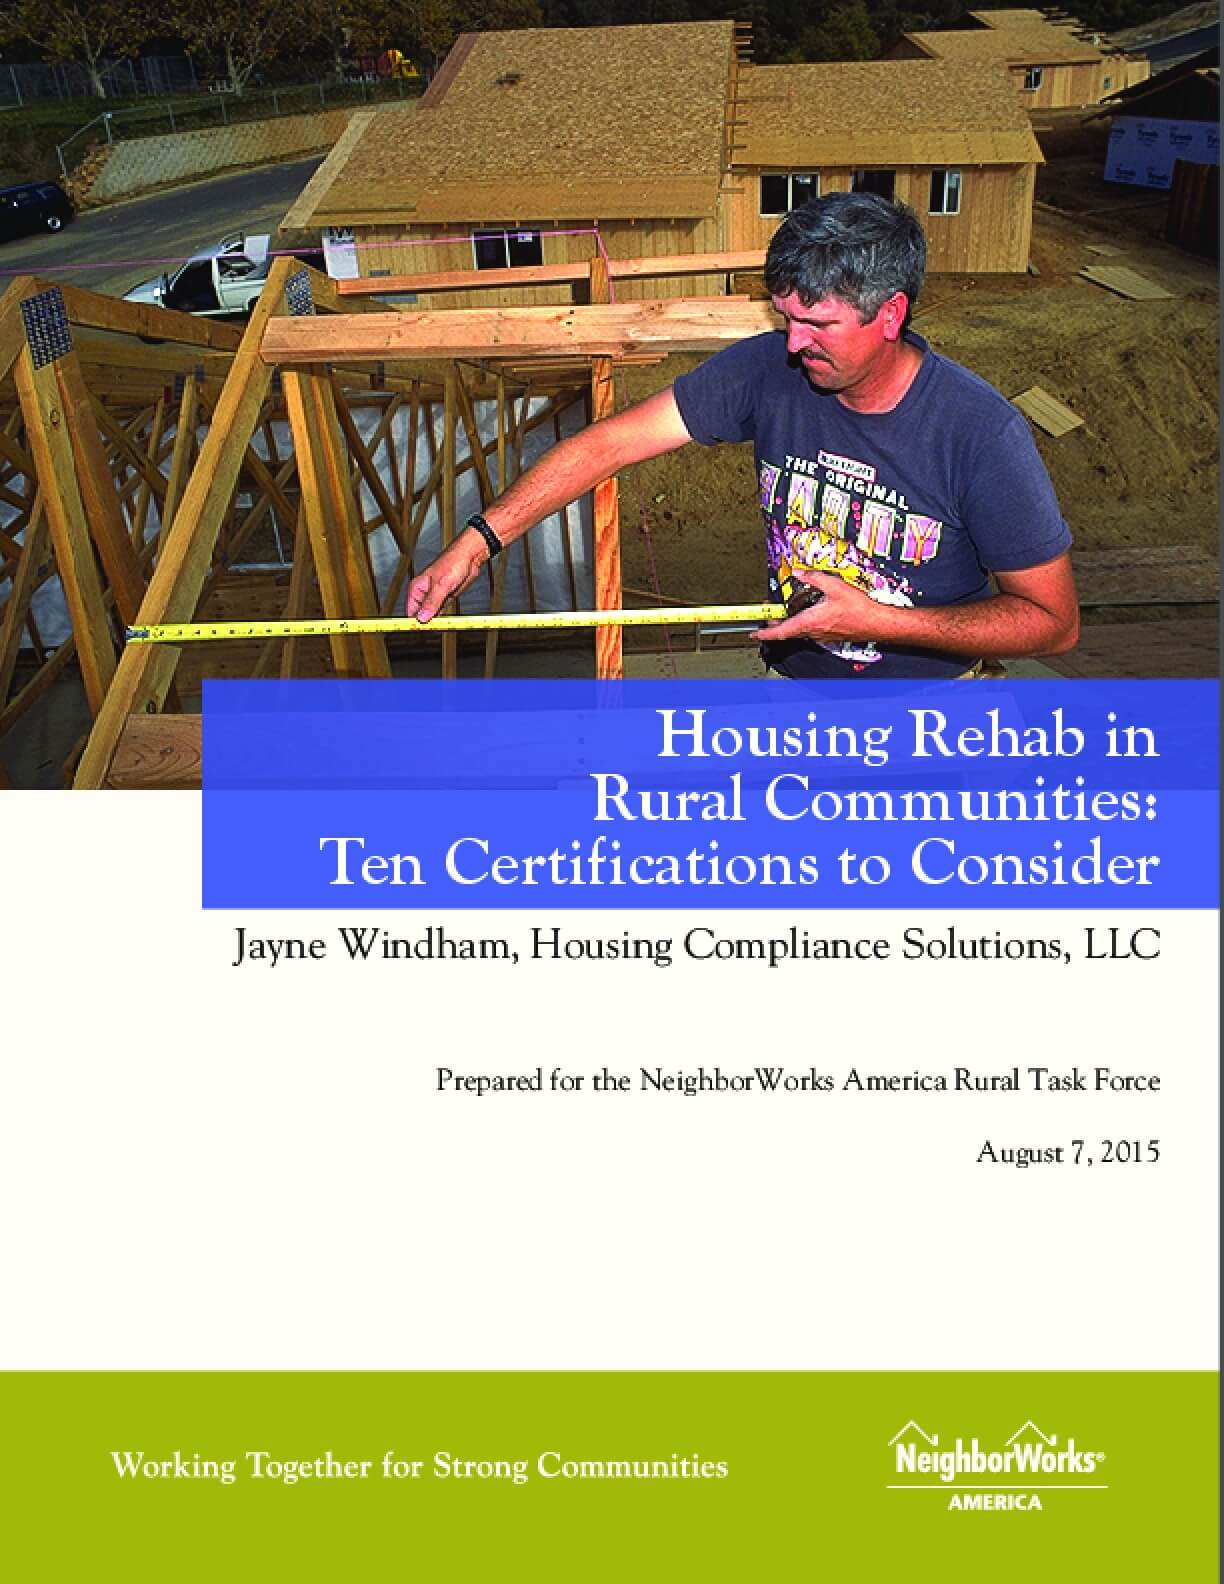 Housing Rehab in Rural Communities: Ten Certifications to Consider